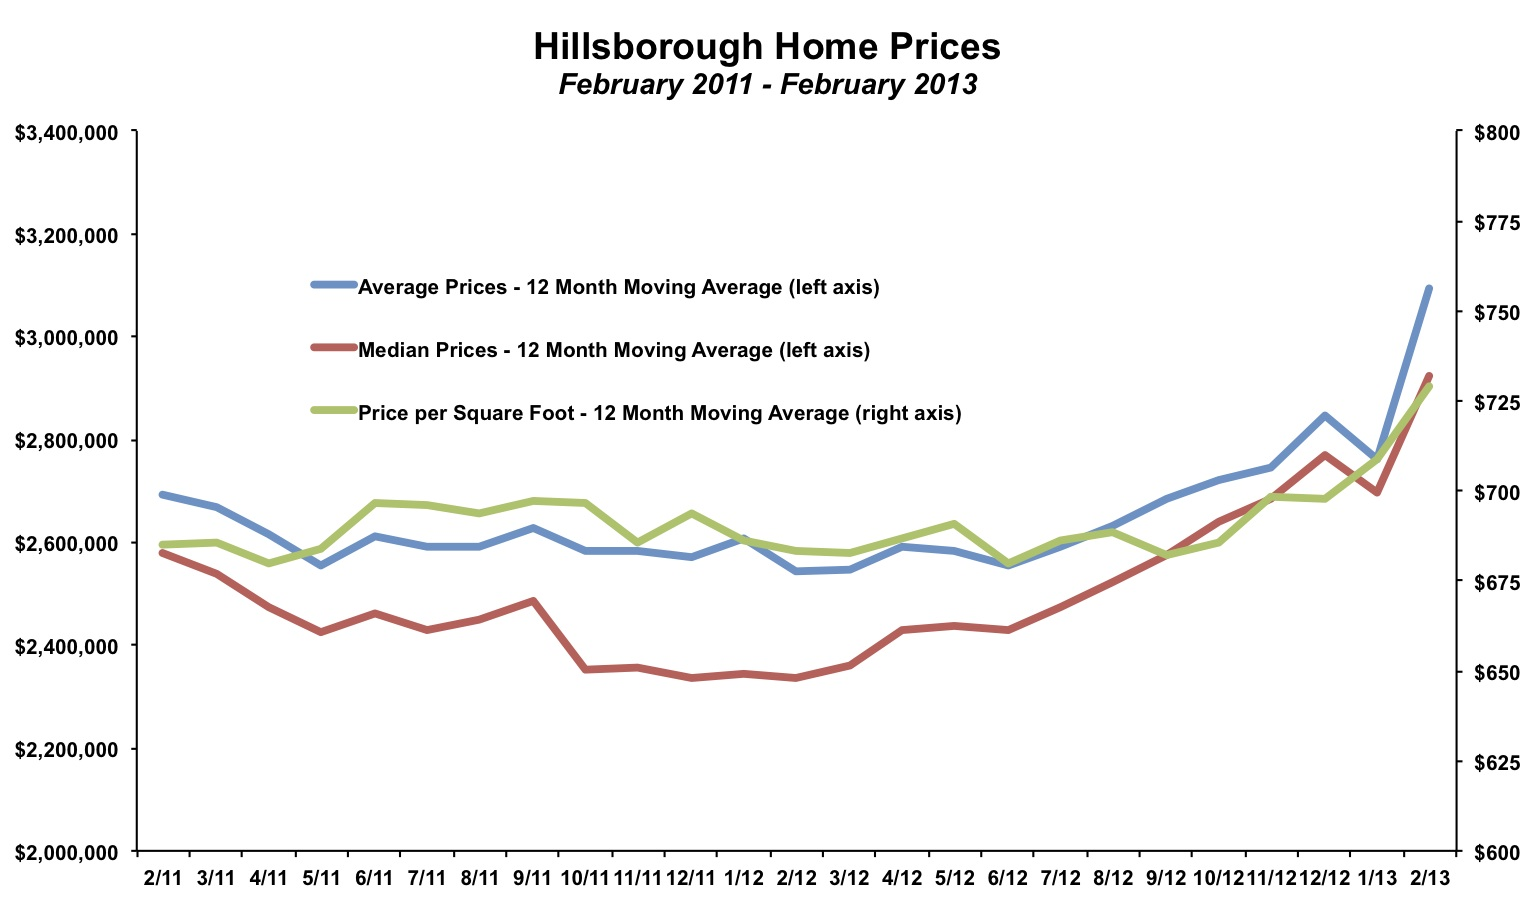 Hillsborough Home Price February 2013